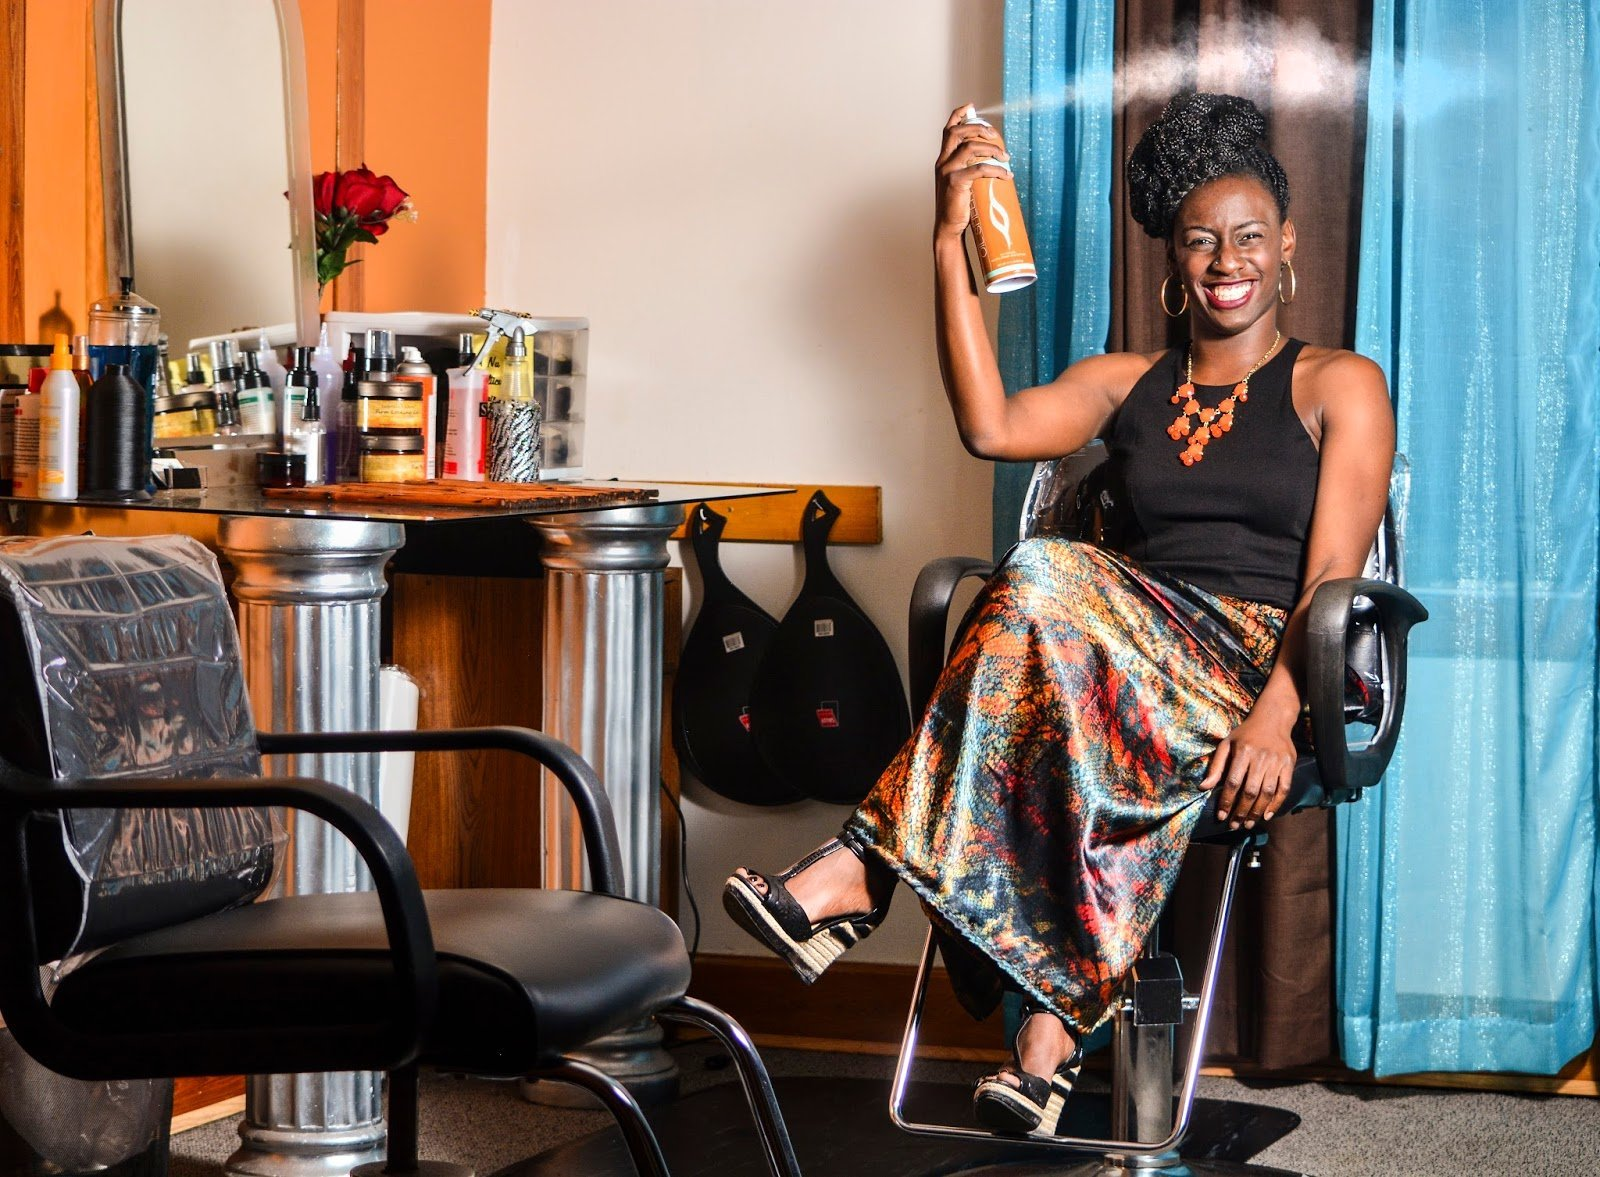 How to Choose a Natural Hair Salon: 5 Tips